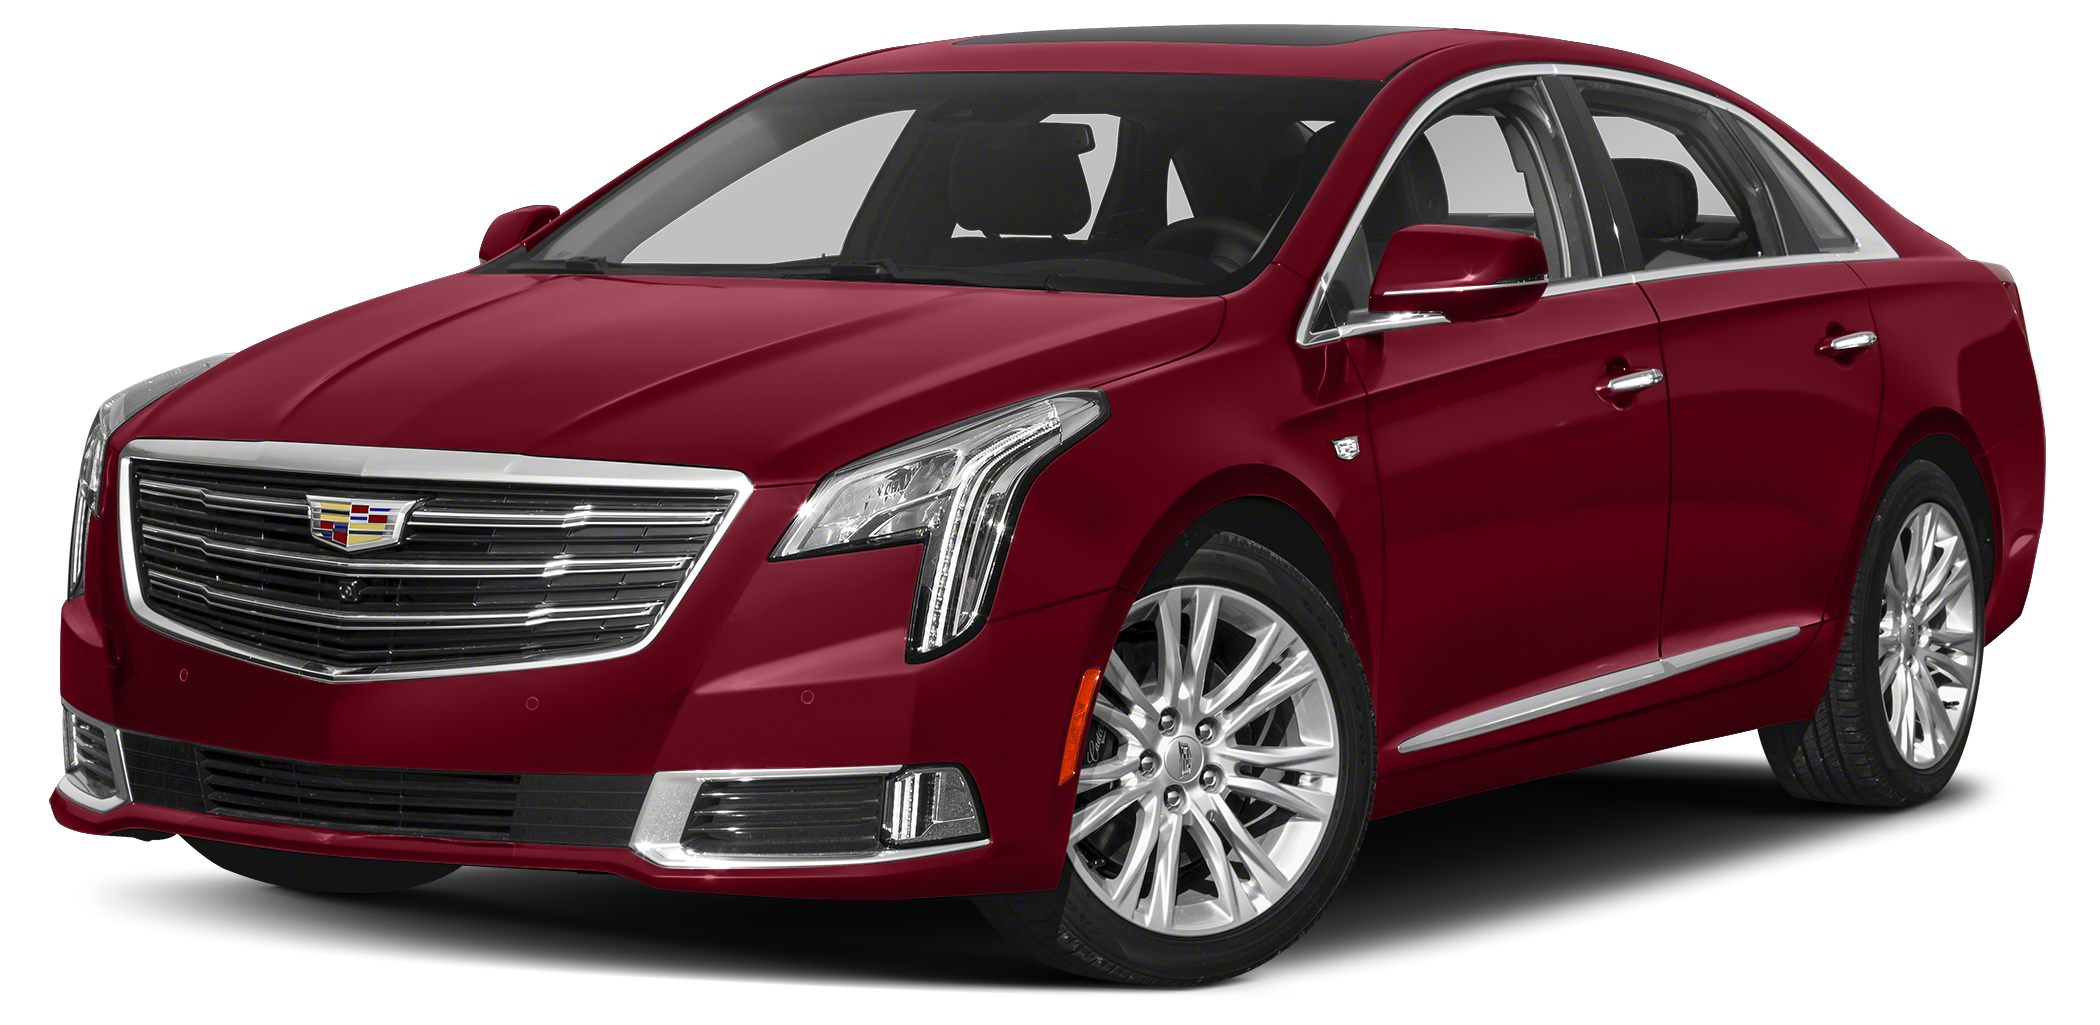 2018 Cadillac XTS Luxury Miles 2Color Red Stock 4234 VIN 2G61M5S3XJ9140208